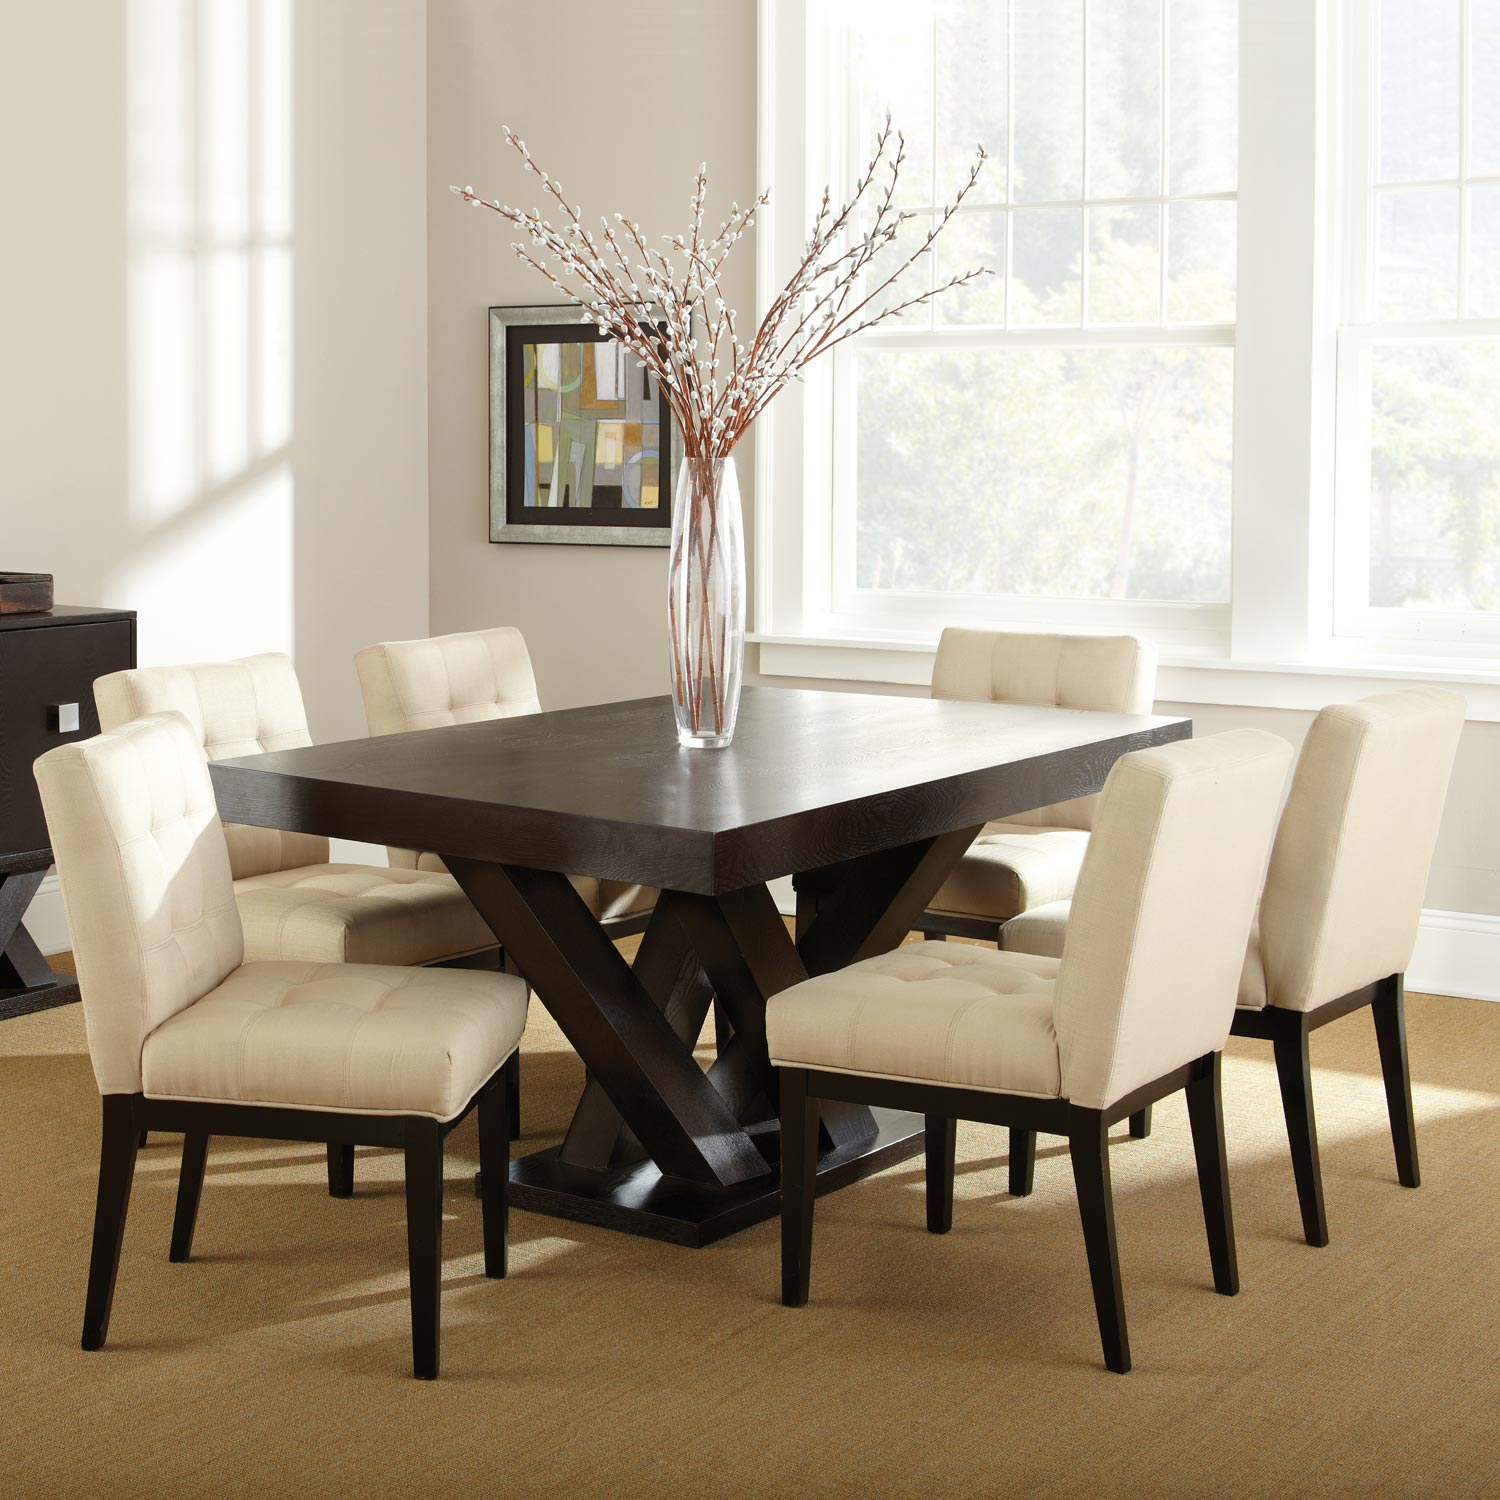 Tiffany 7 Piece Dining Set   Espresso, Beige Tufted Dining Chairs    SSC TF500 ...